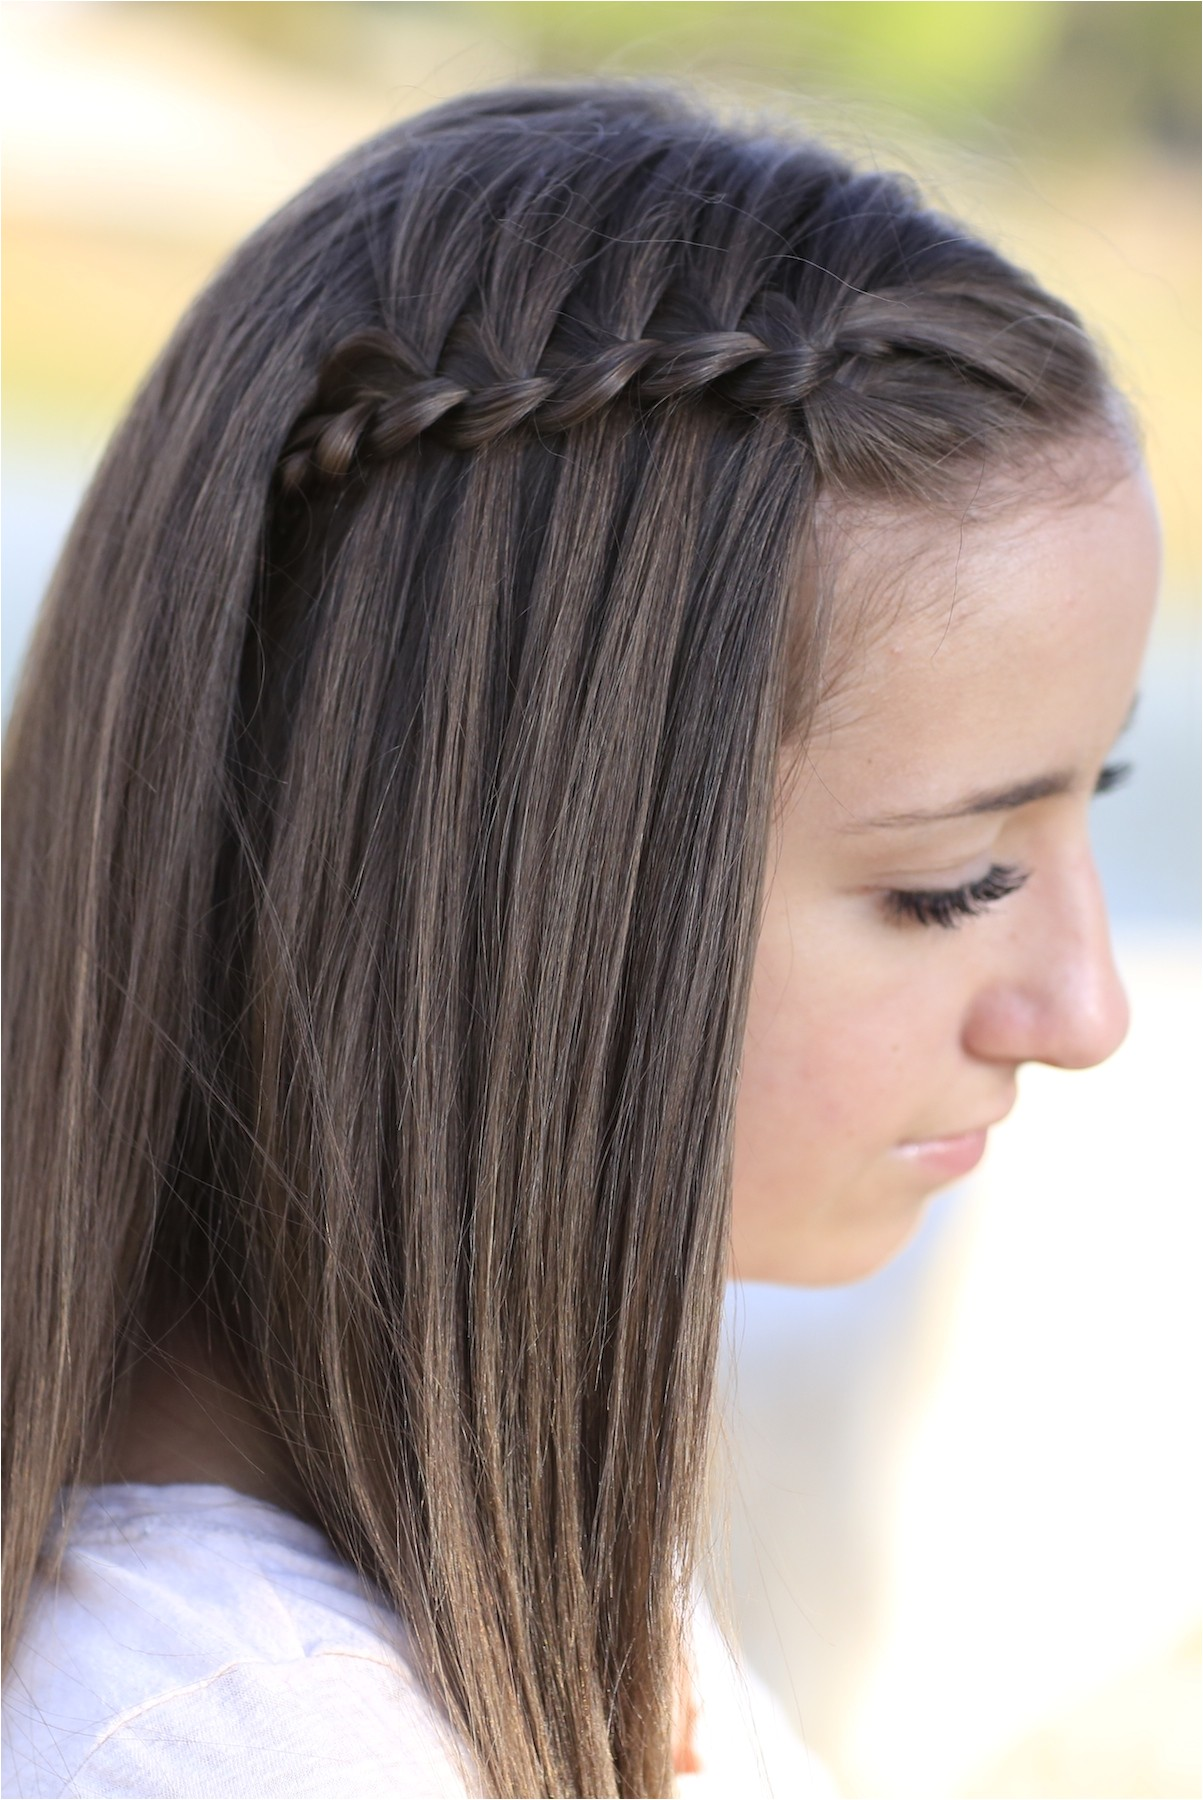 ideas for cute hairstyles for 4 year olds